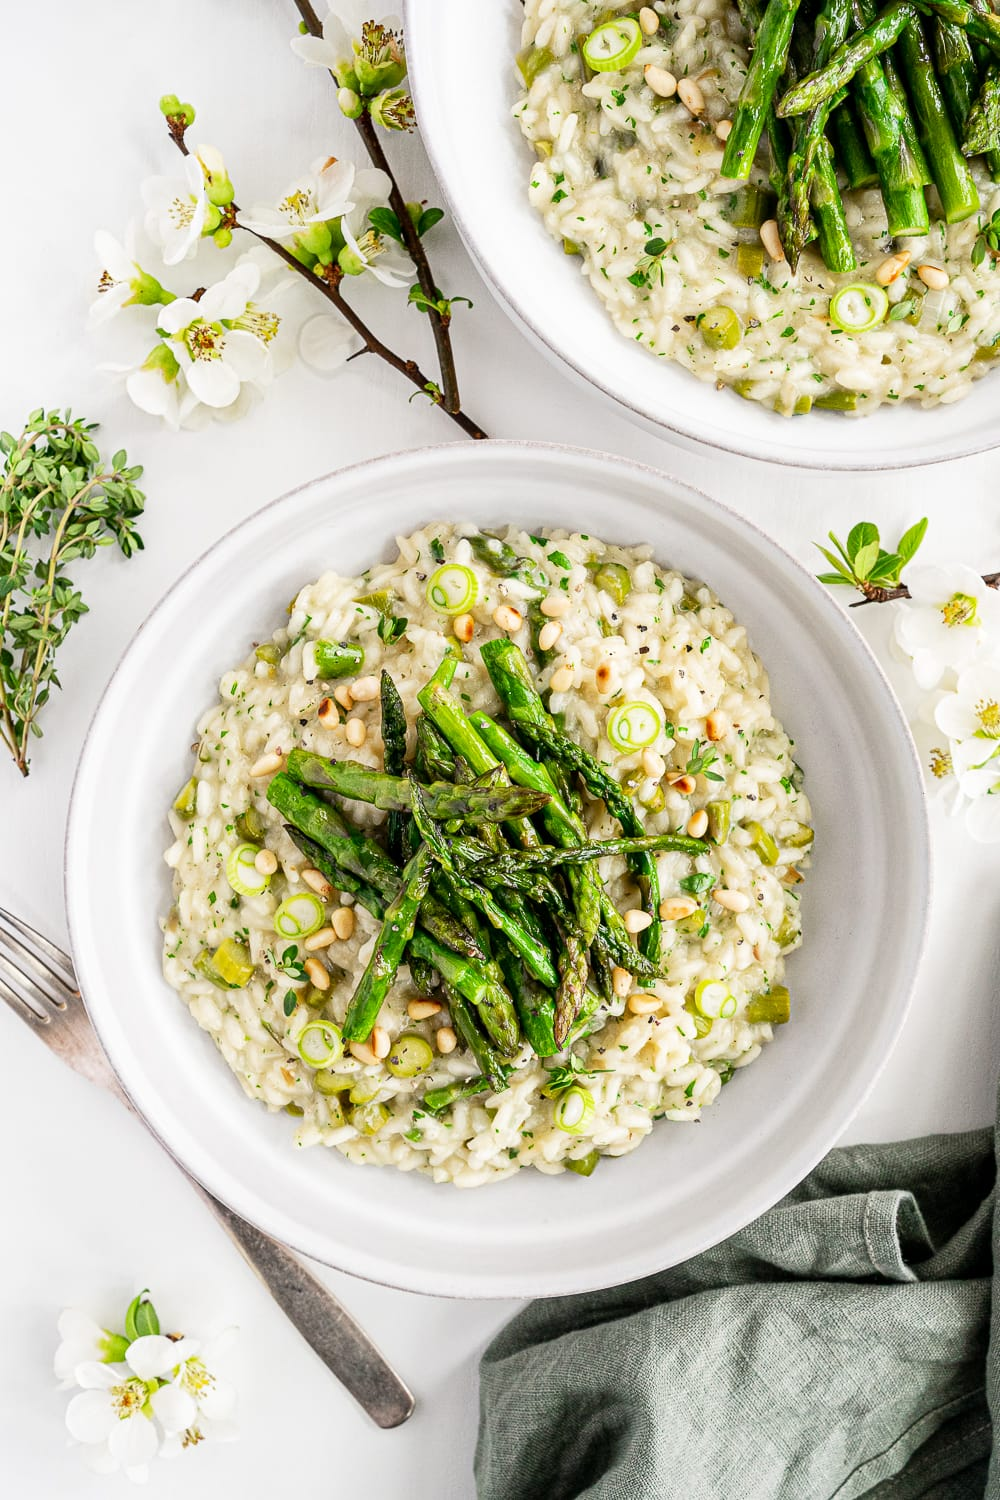 Top view of plated vegan asparagus risotto